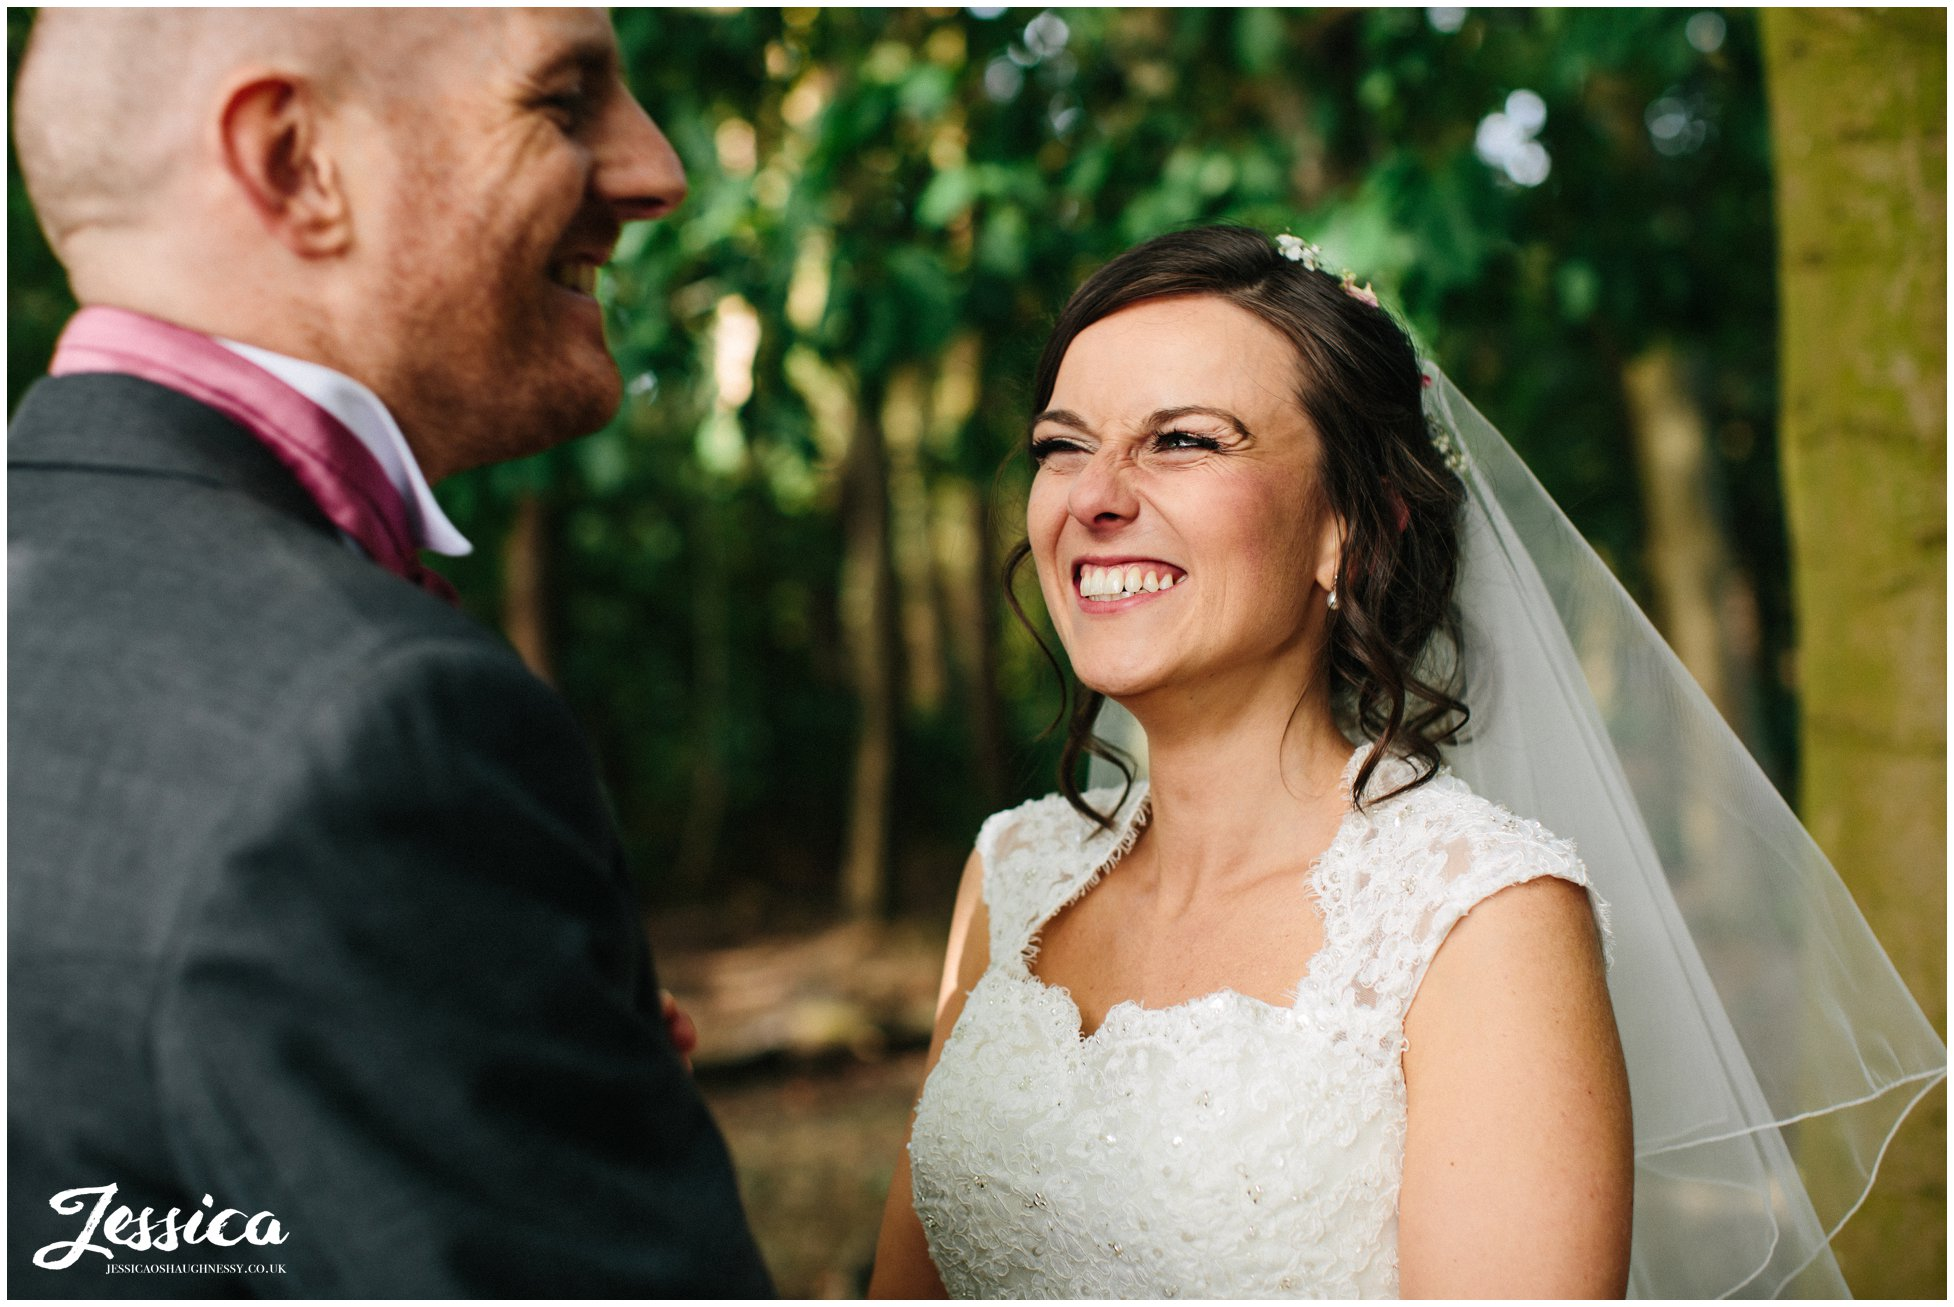 bride laughing at her groom on their wedding day - cheshire wedding photography